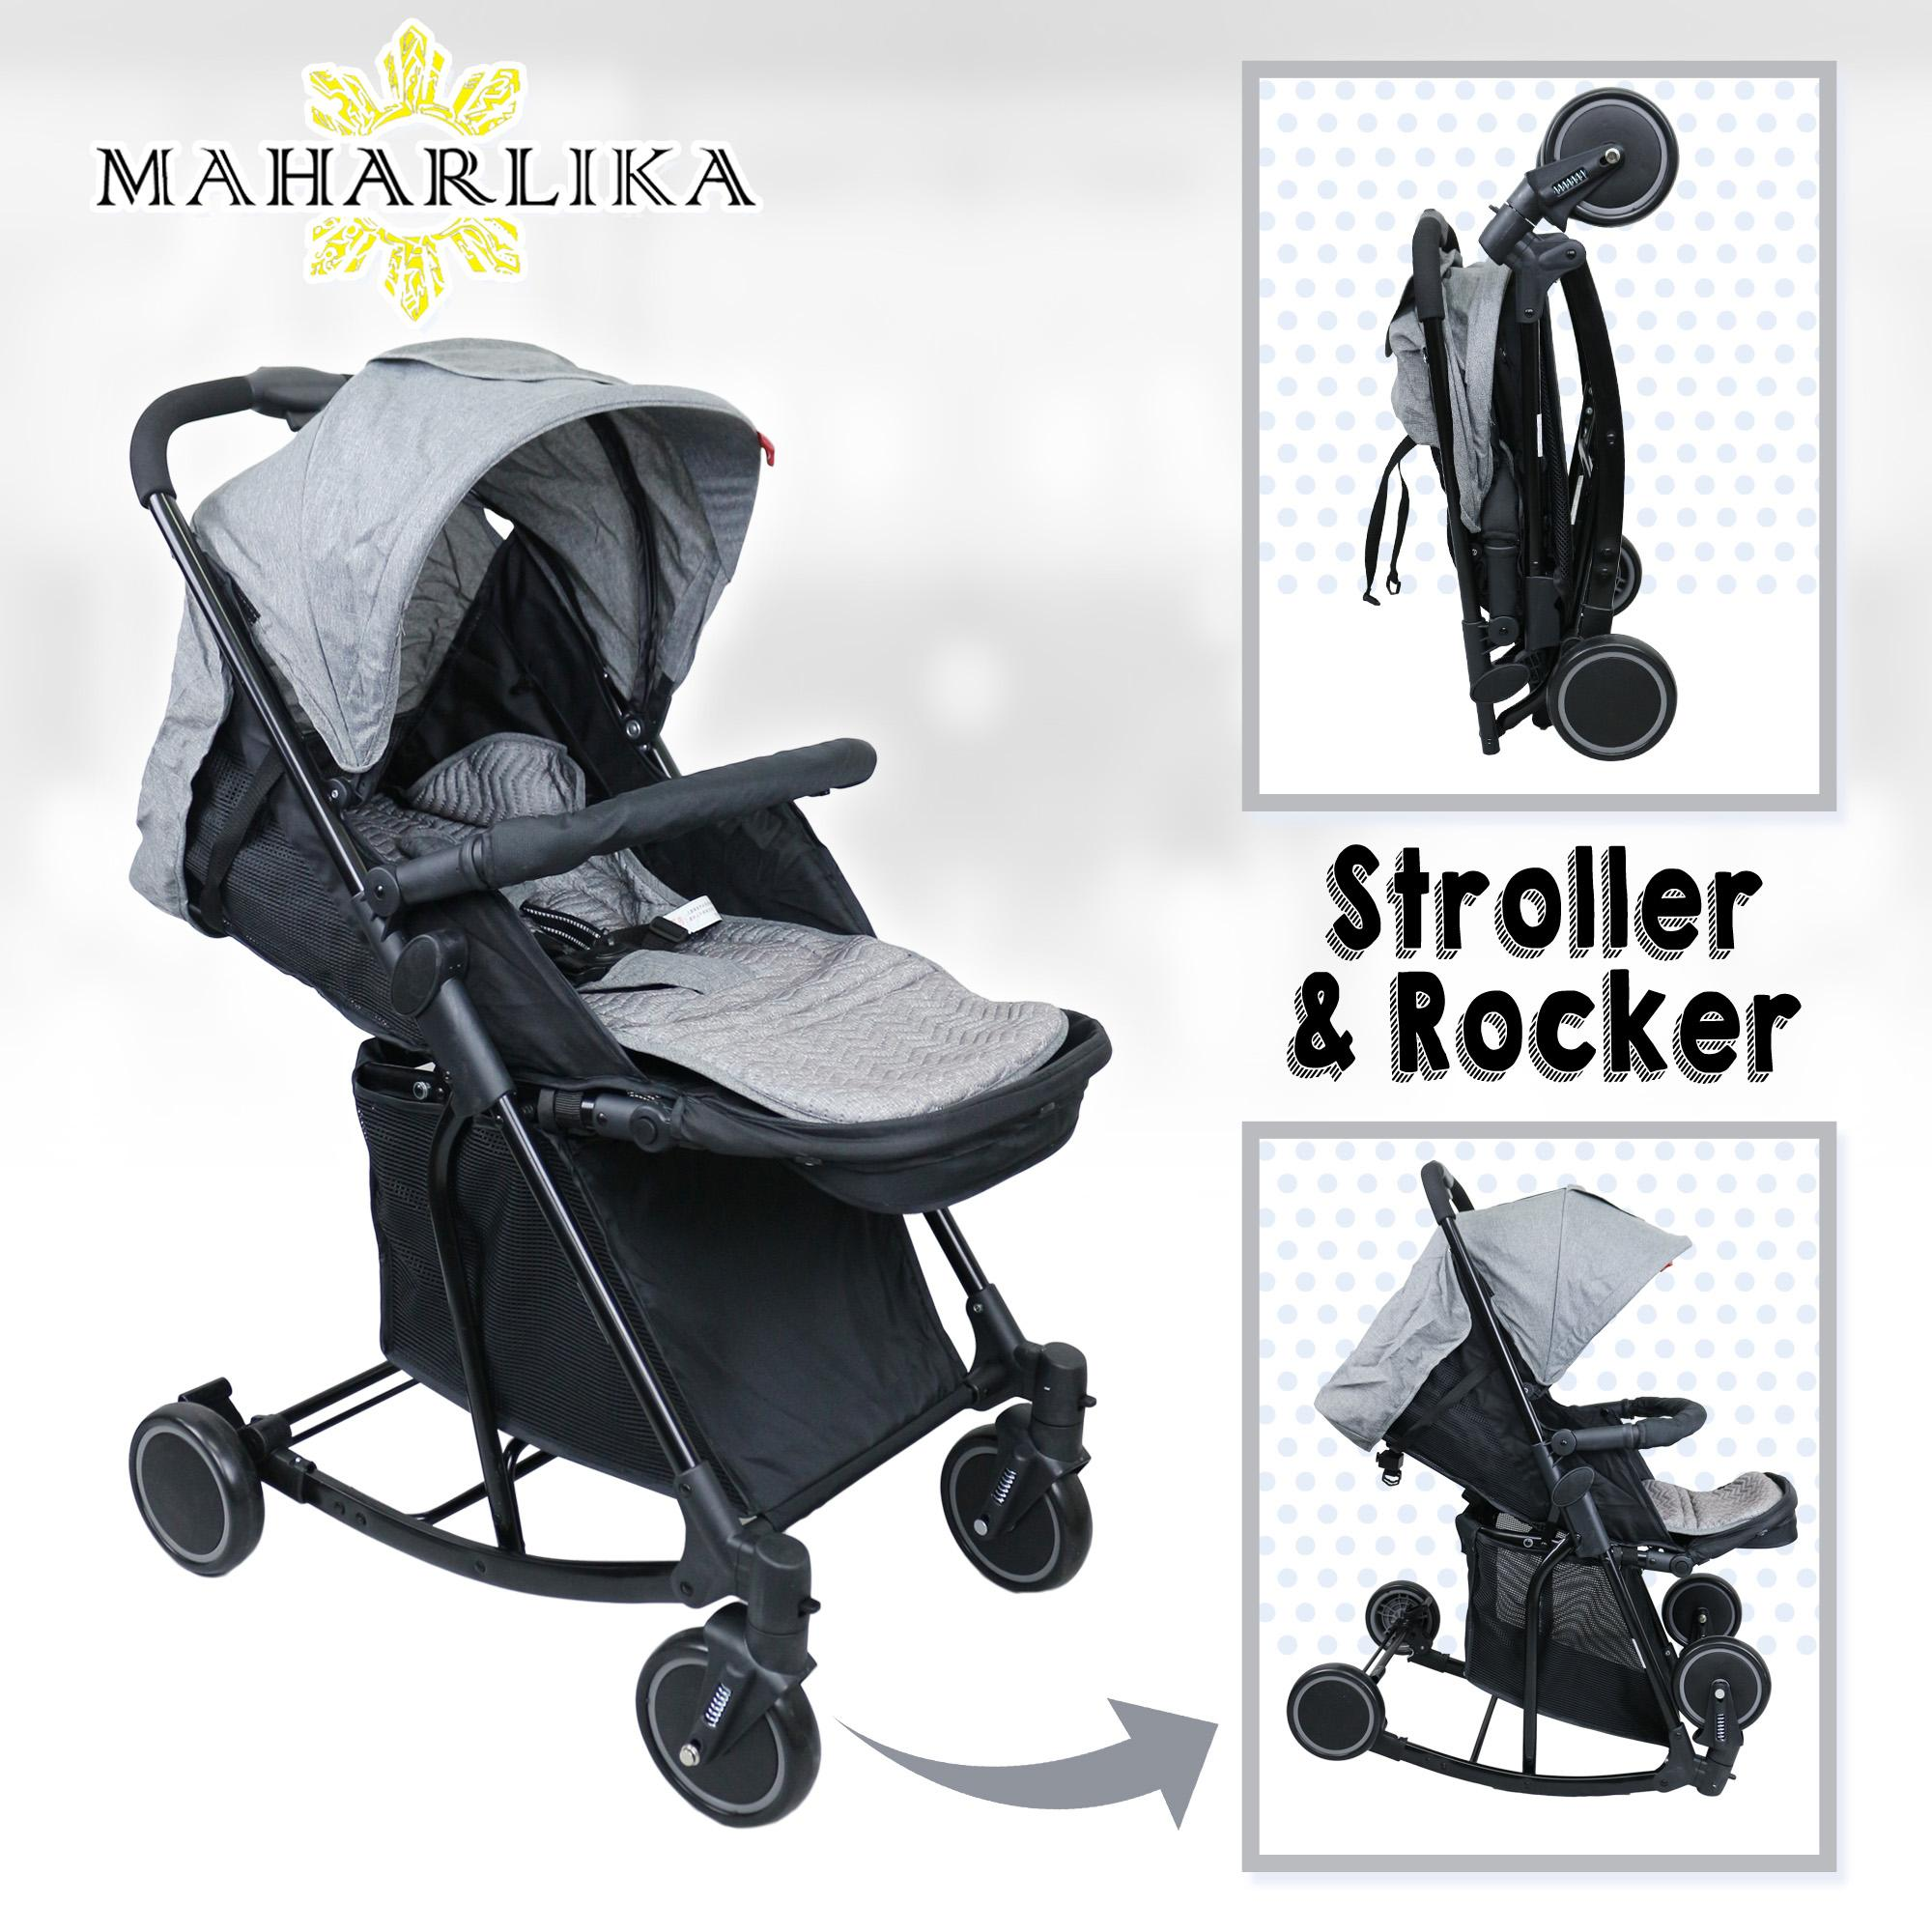 Mk Folding Convertible Baby Stroller Rocker For Baby 0 To 3 Years Old Grey T609 By Maharlika.